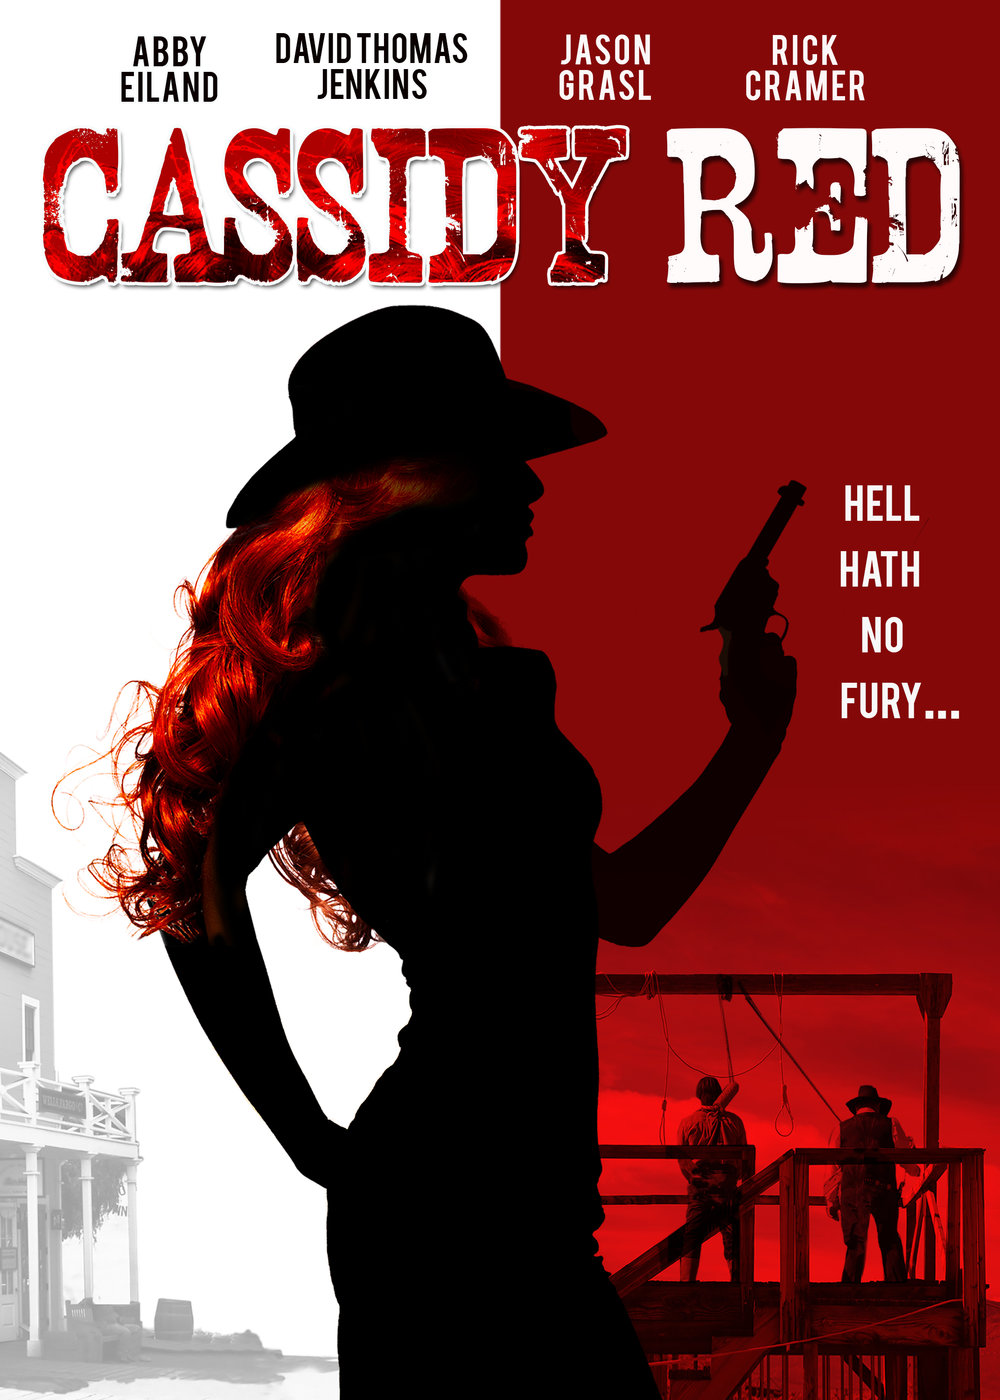 CassidyRed_ContentBridge_Movie_Mezz_KeyArt_2143x3000.jpg